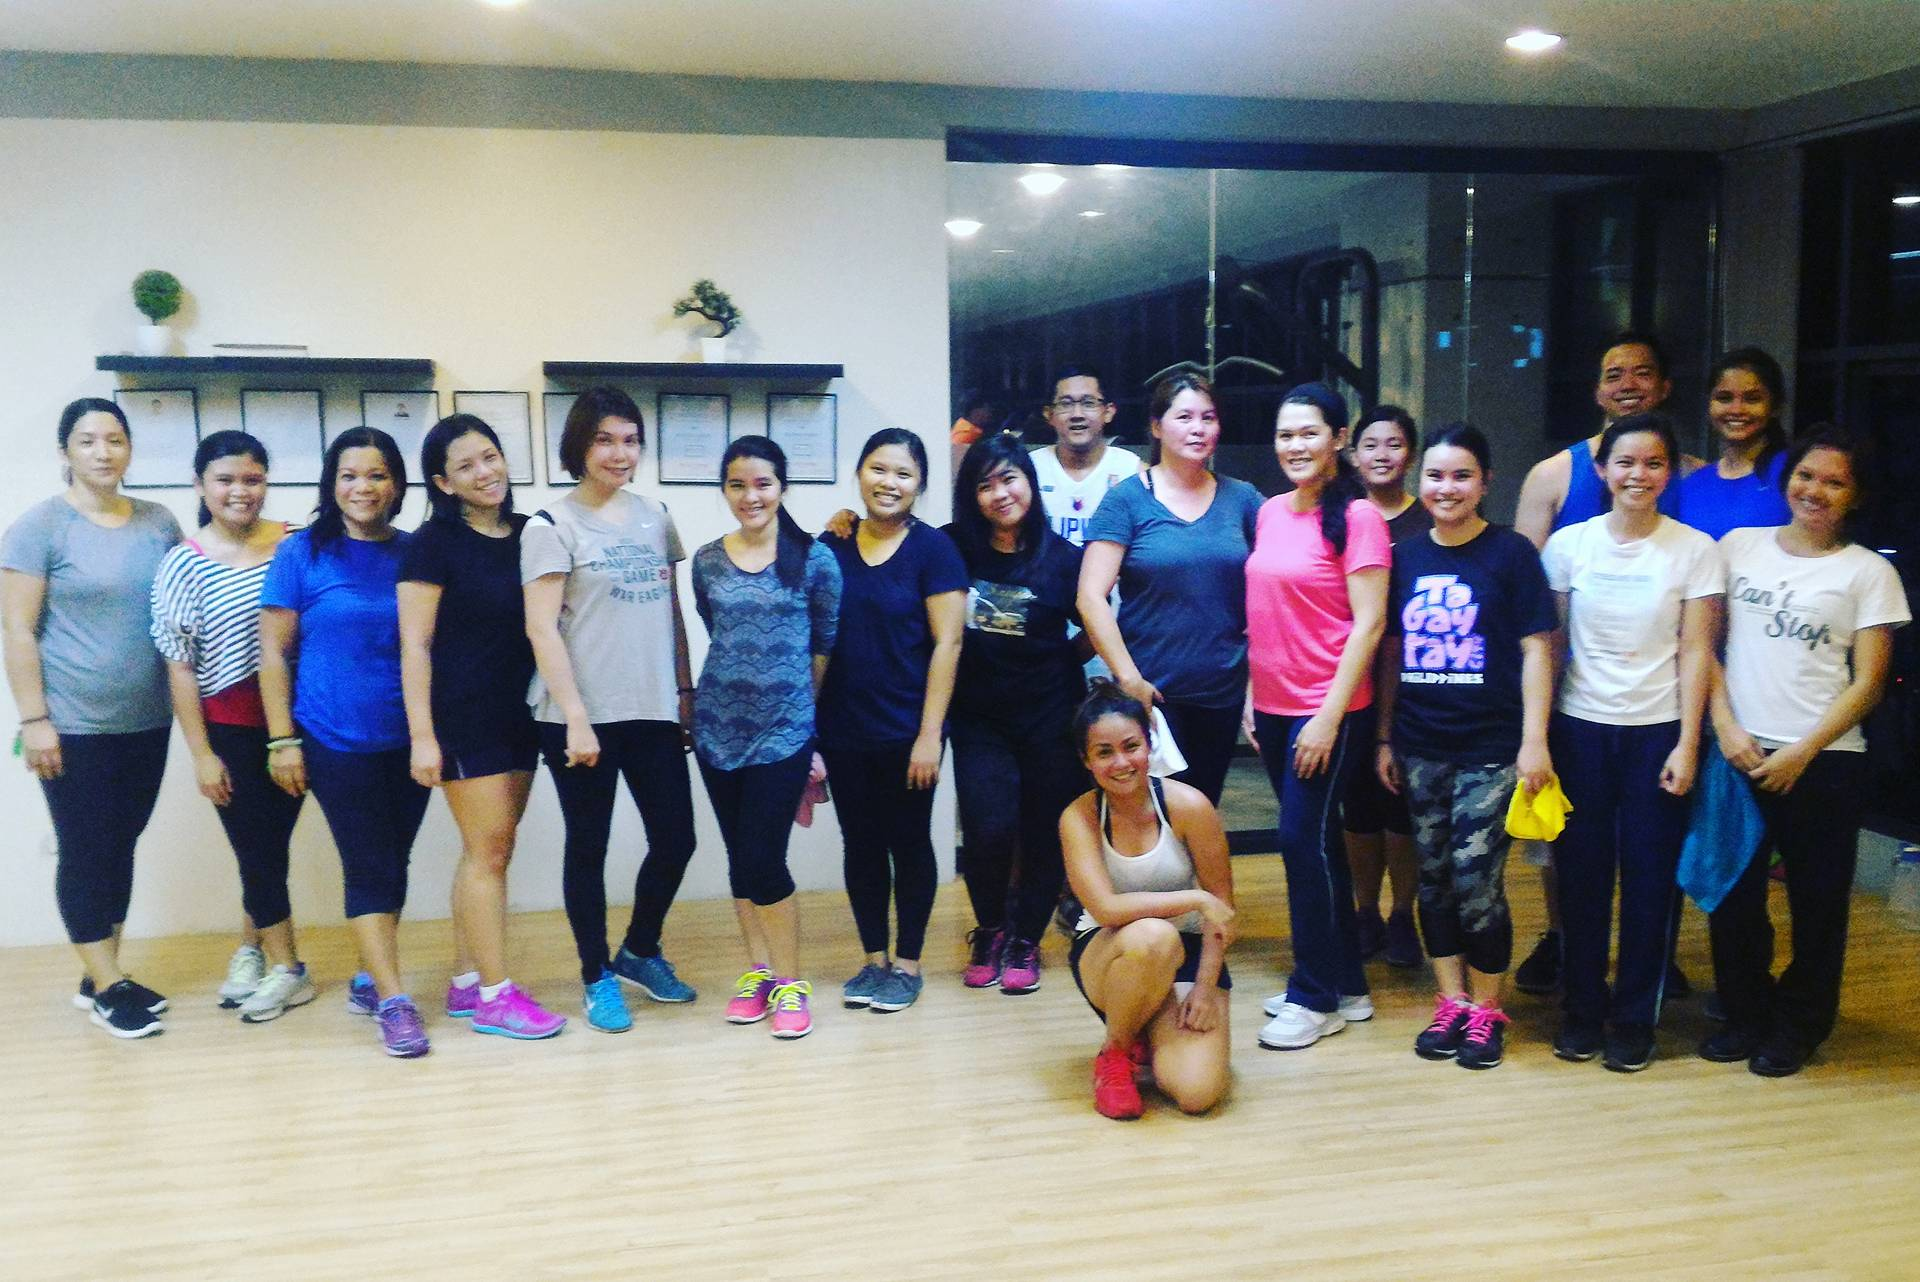 Say Goodbye to the Calories with Athletic Cardio of Fitpark Wellness Gym